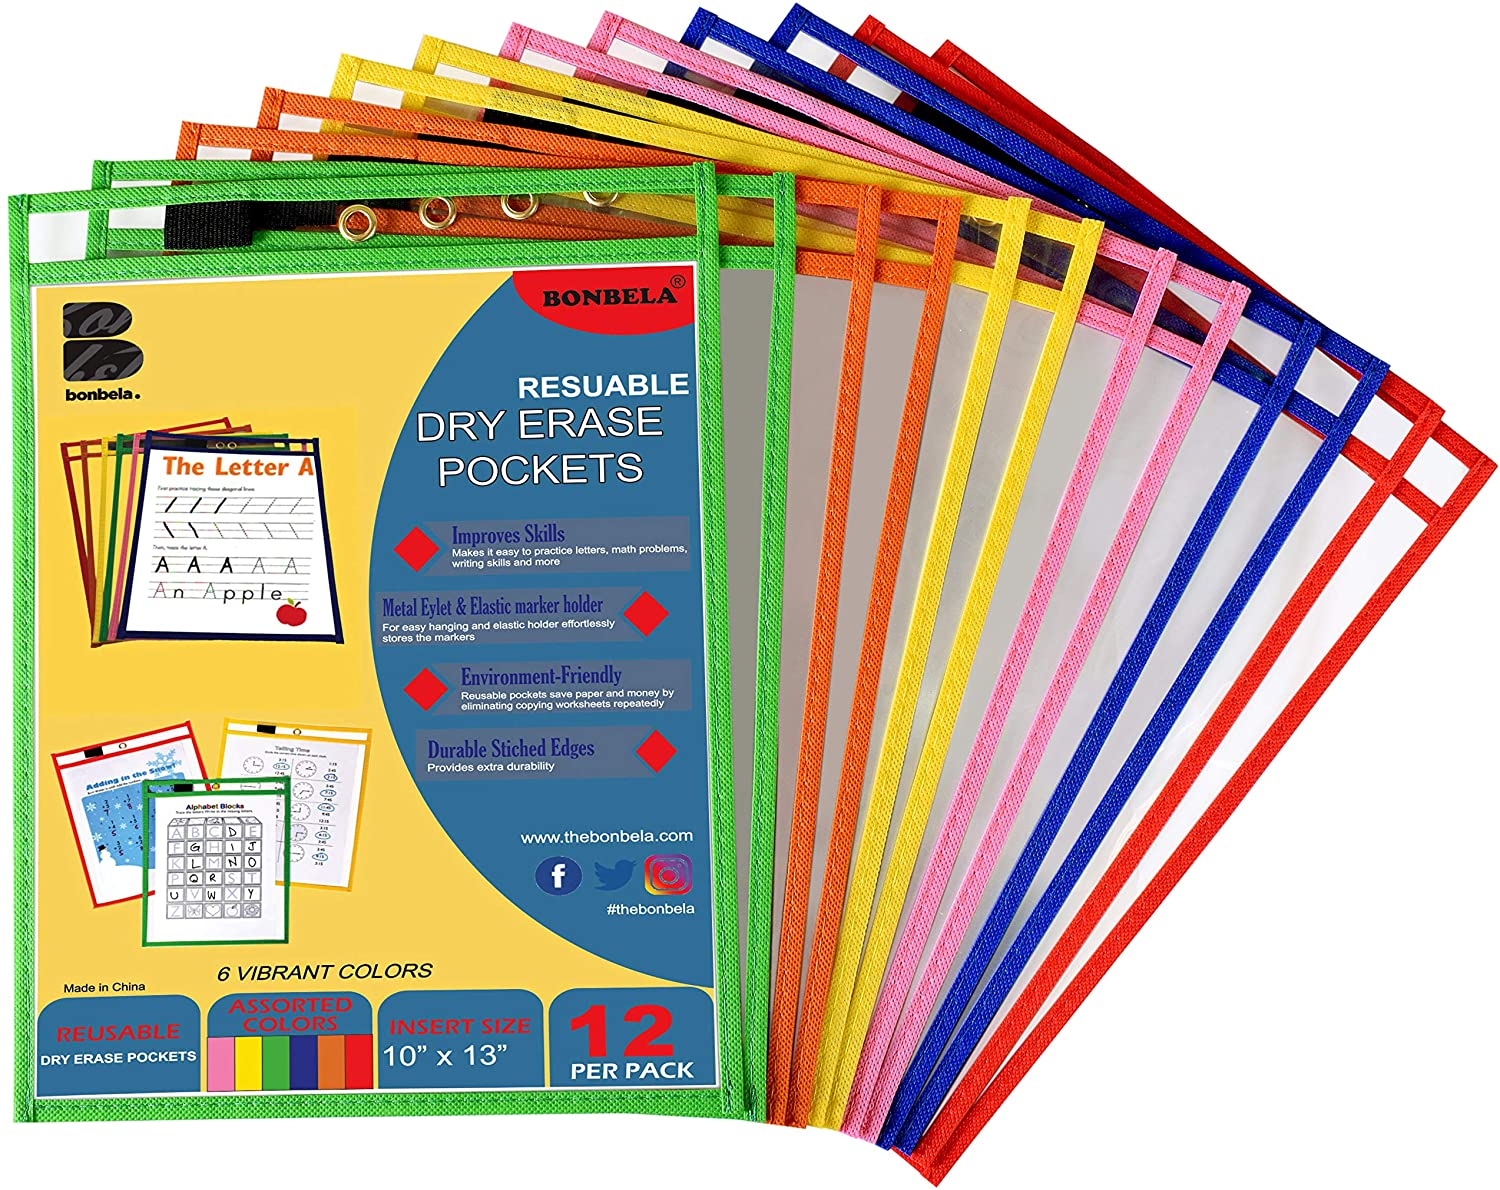 Dry Erase Pockets 12 Pack - Dry Erase Sleeves - Reusable Sheet Protectors - School or Work - Oversized 10 x 13 Inches - Dry Erase Sheets - Job Ticket Holders